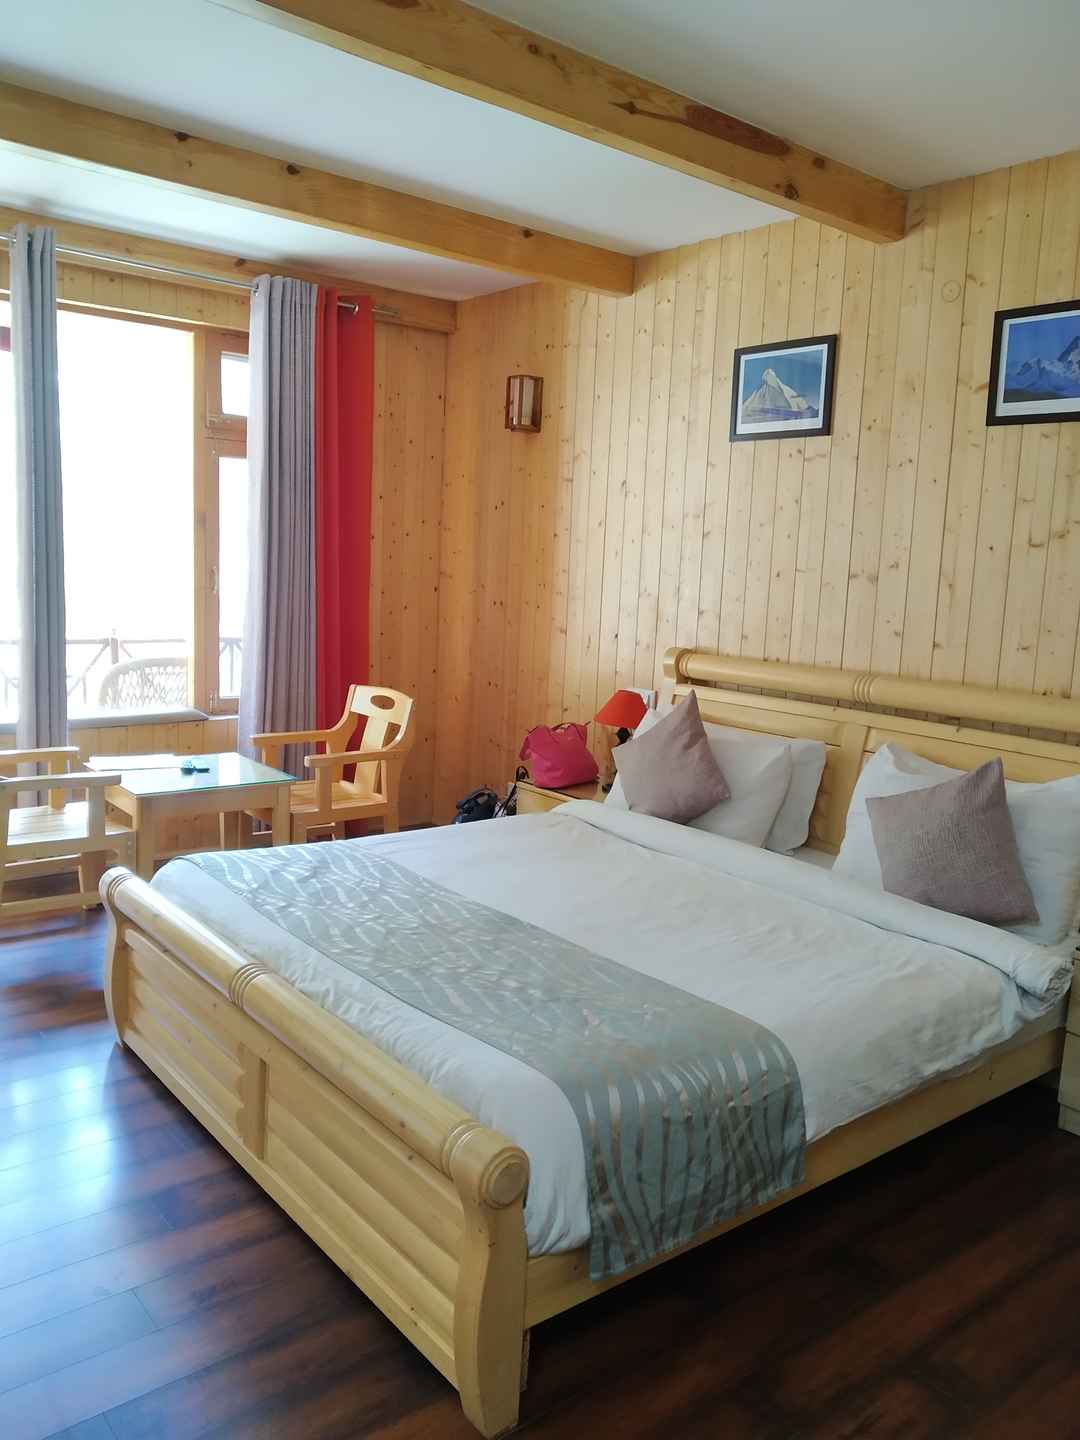 Where to stay in Manali